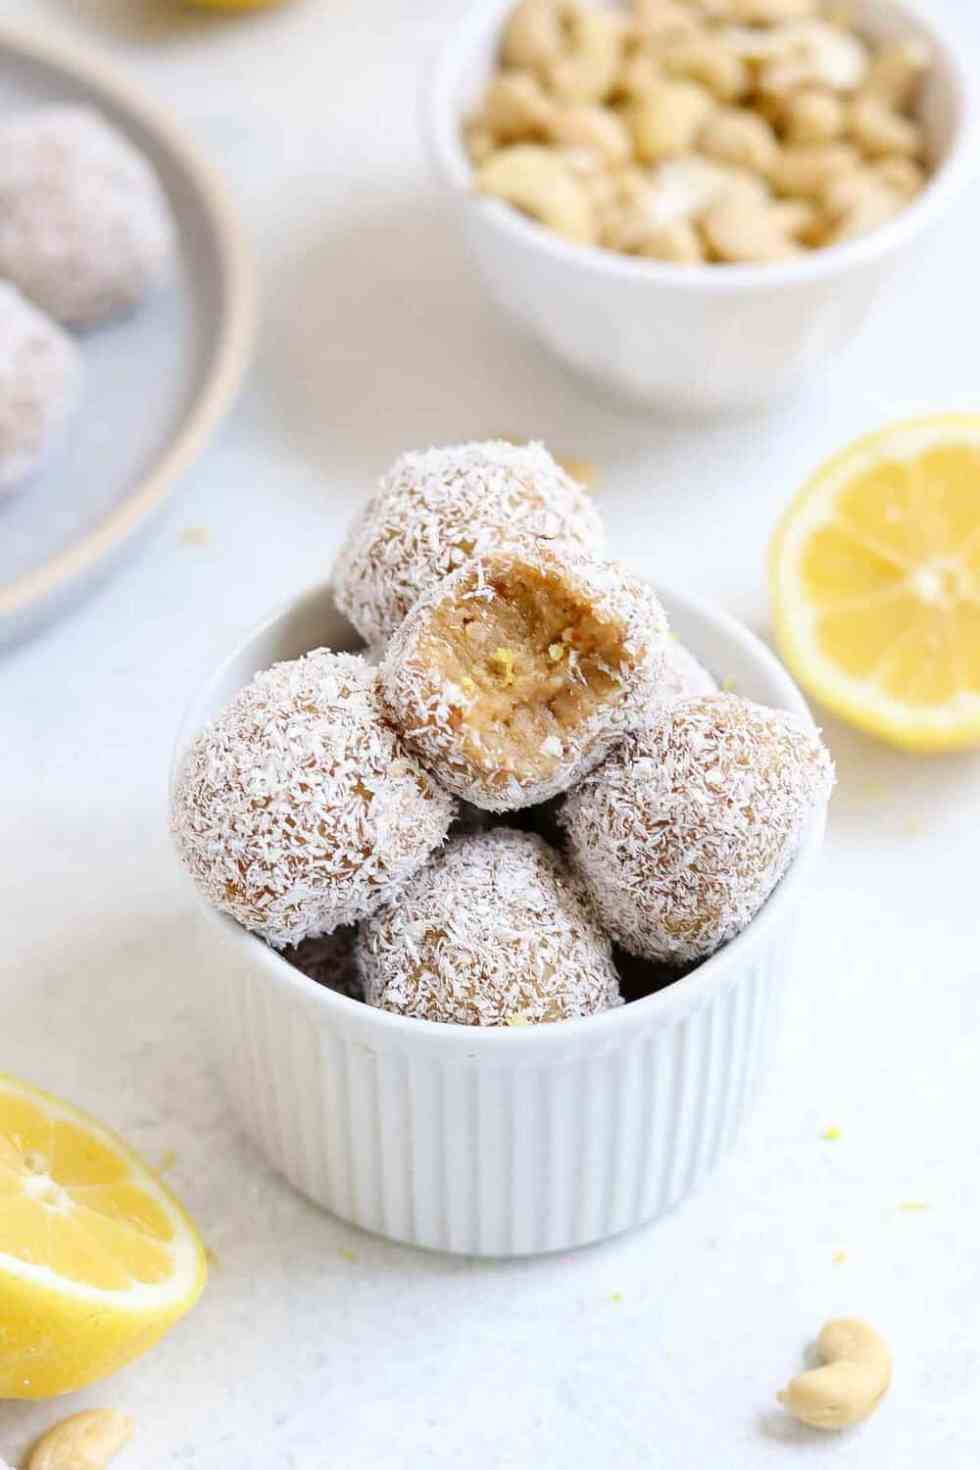 Pile of bliss balls in a white bowl with cashews and lemon in the background.